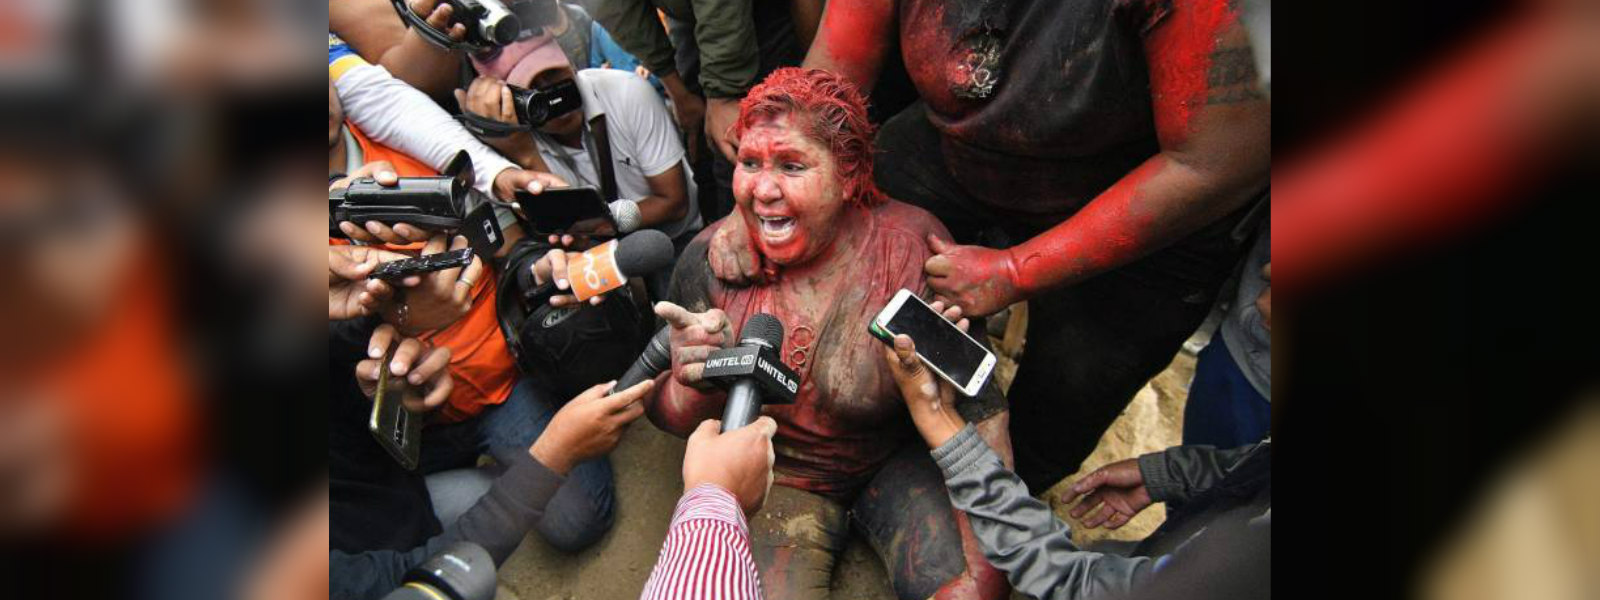 Bolivian mayor attacked with red paint amidst election unrest